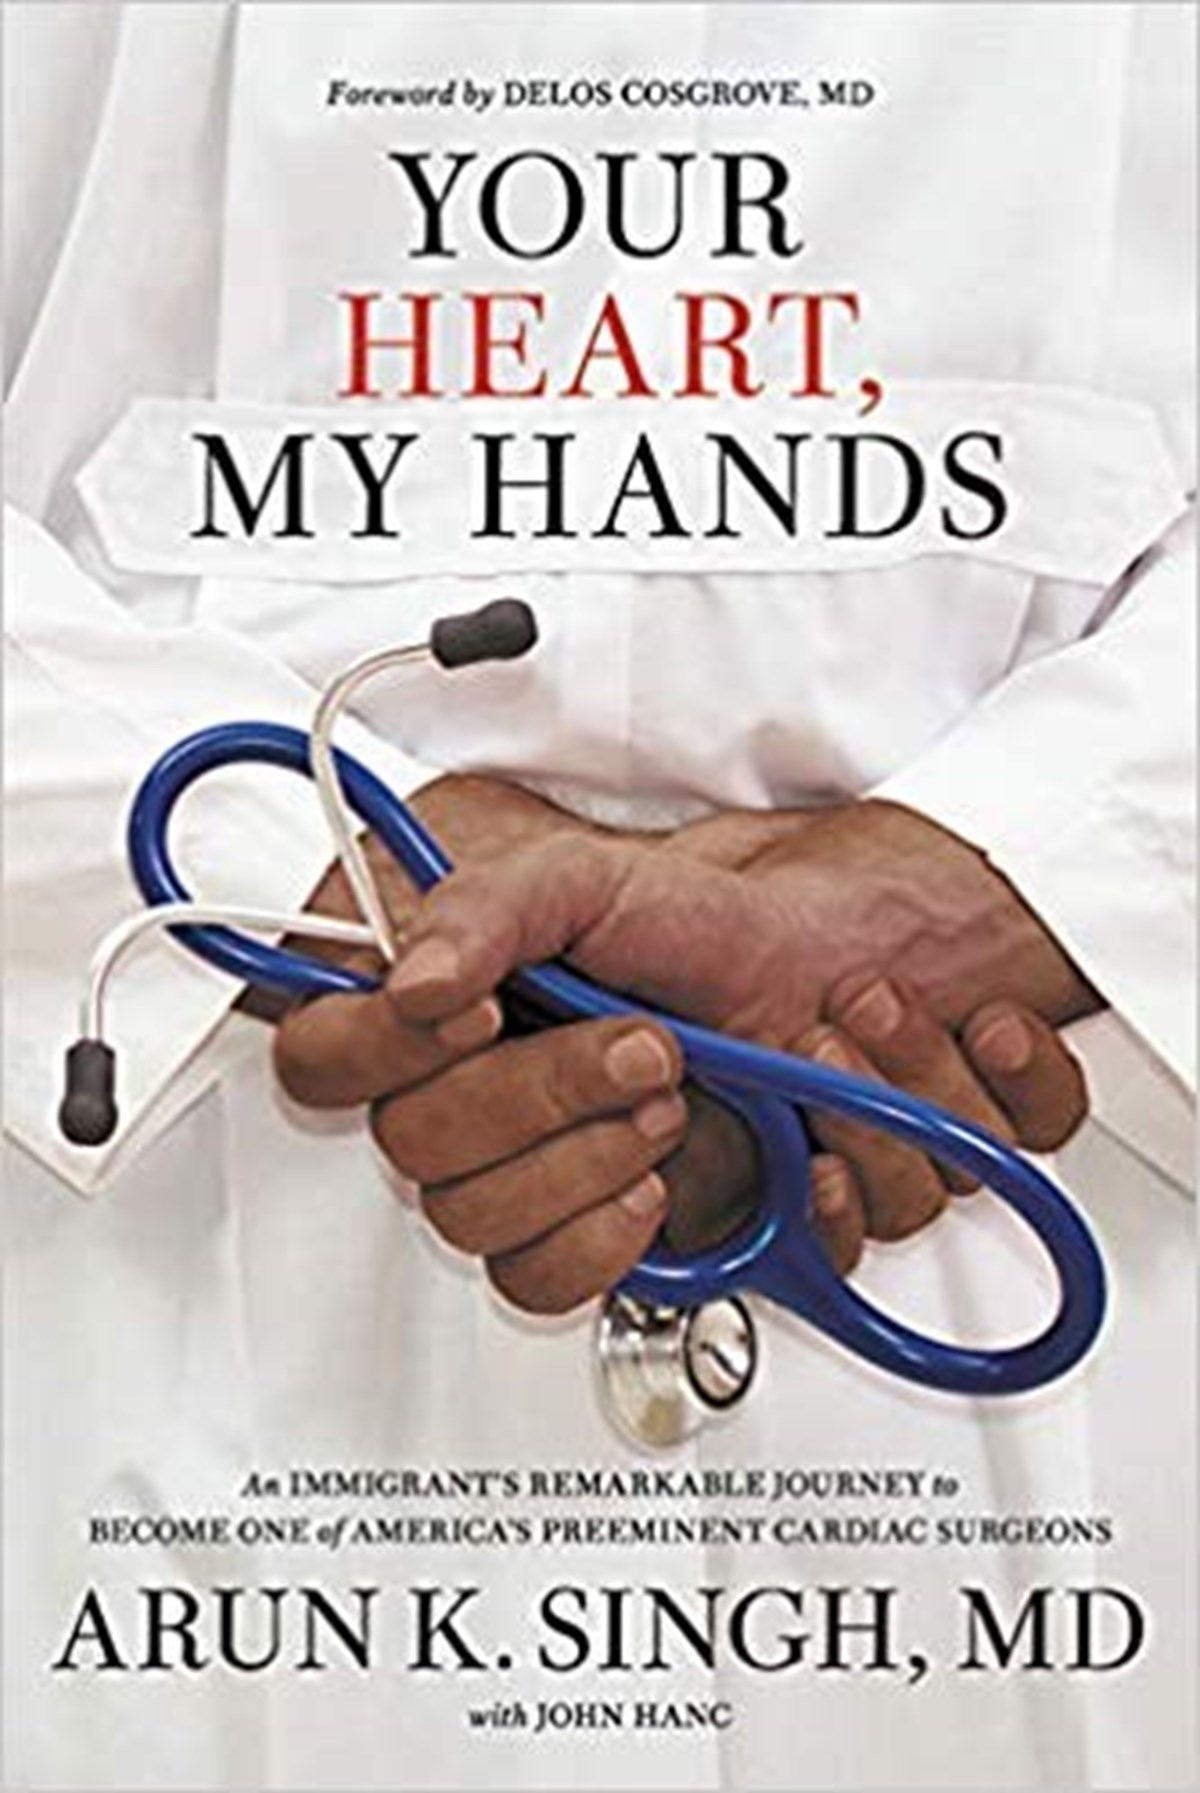 Dr. Arun Singh to sign book at South County Hospital